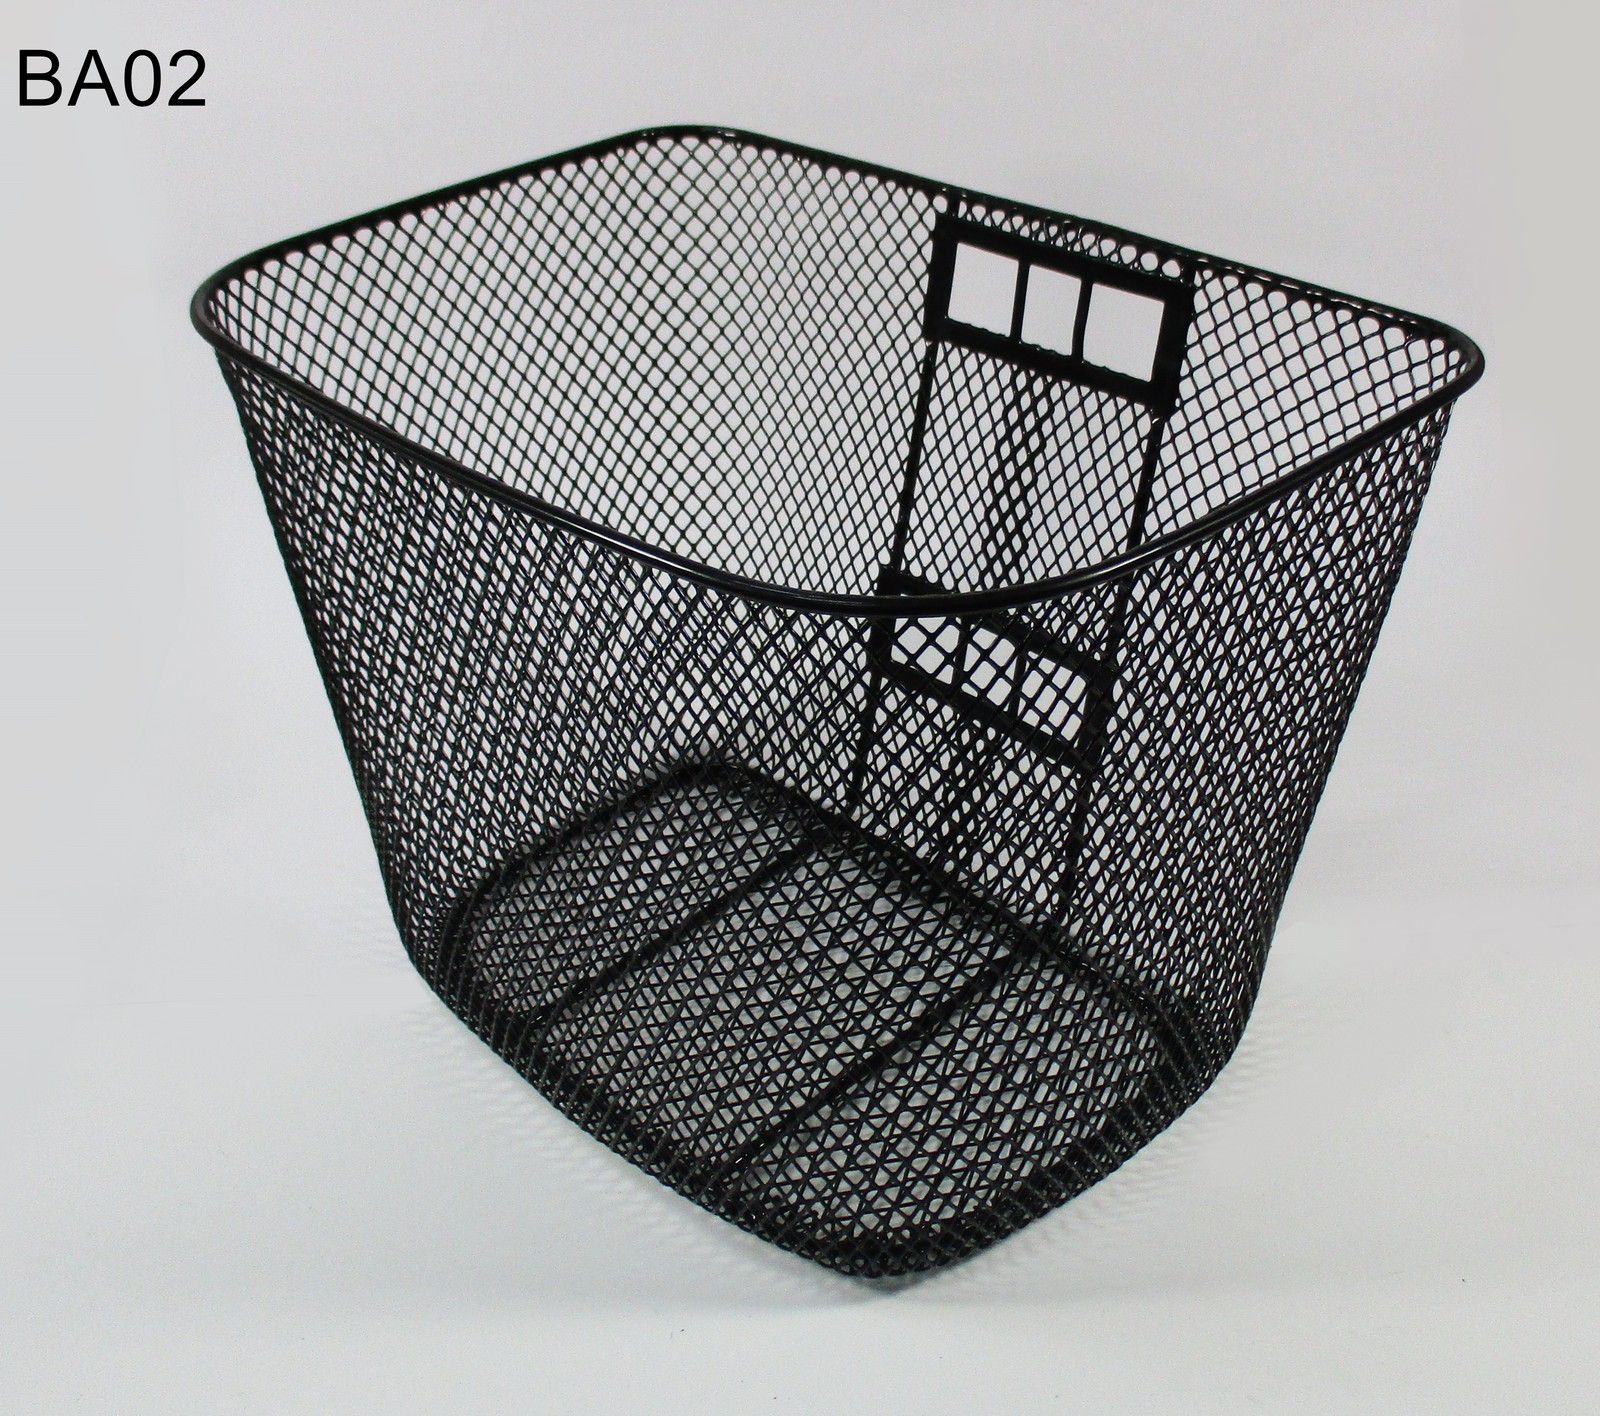 X1pcs BA02 Basket Shoprider Drive CTM Invacare Mobility Scooter Parts Taiwan